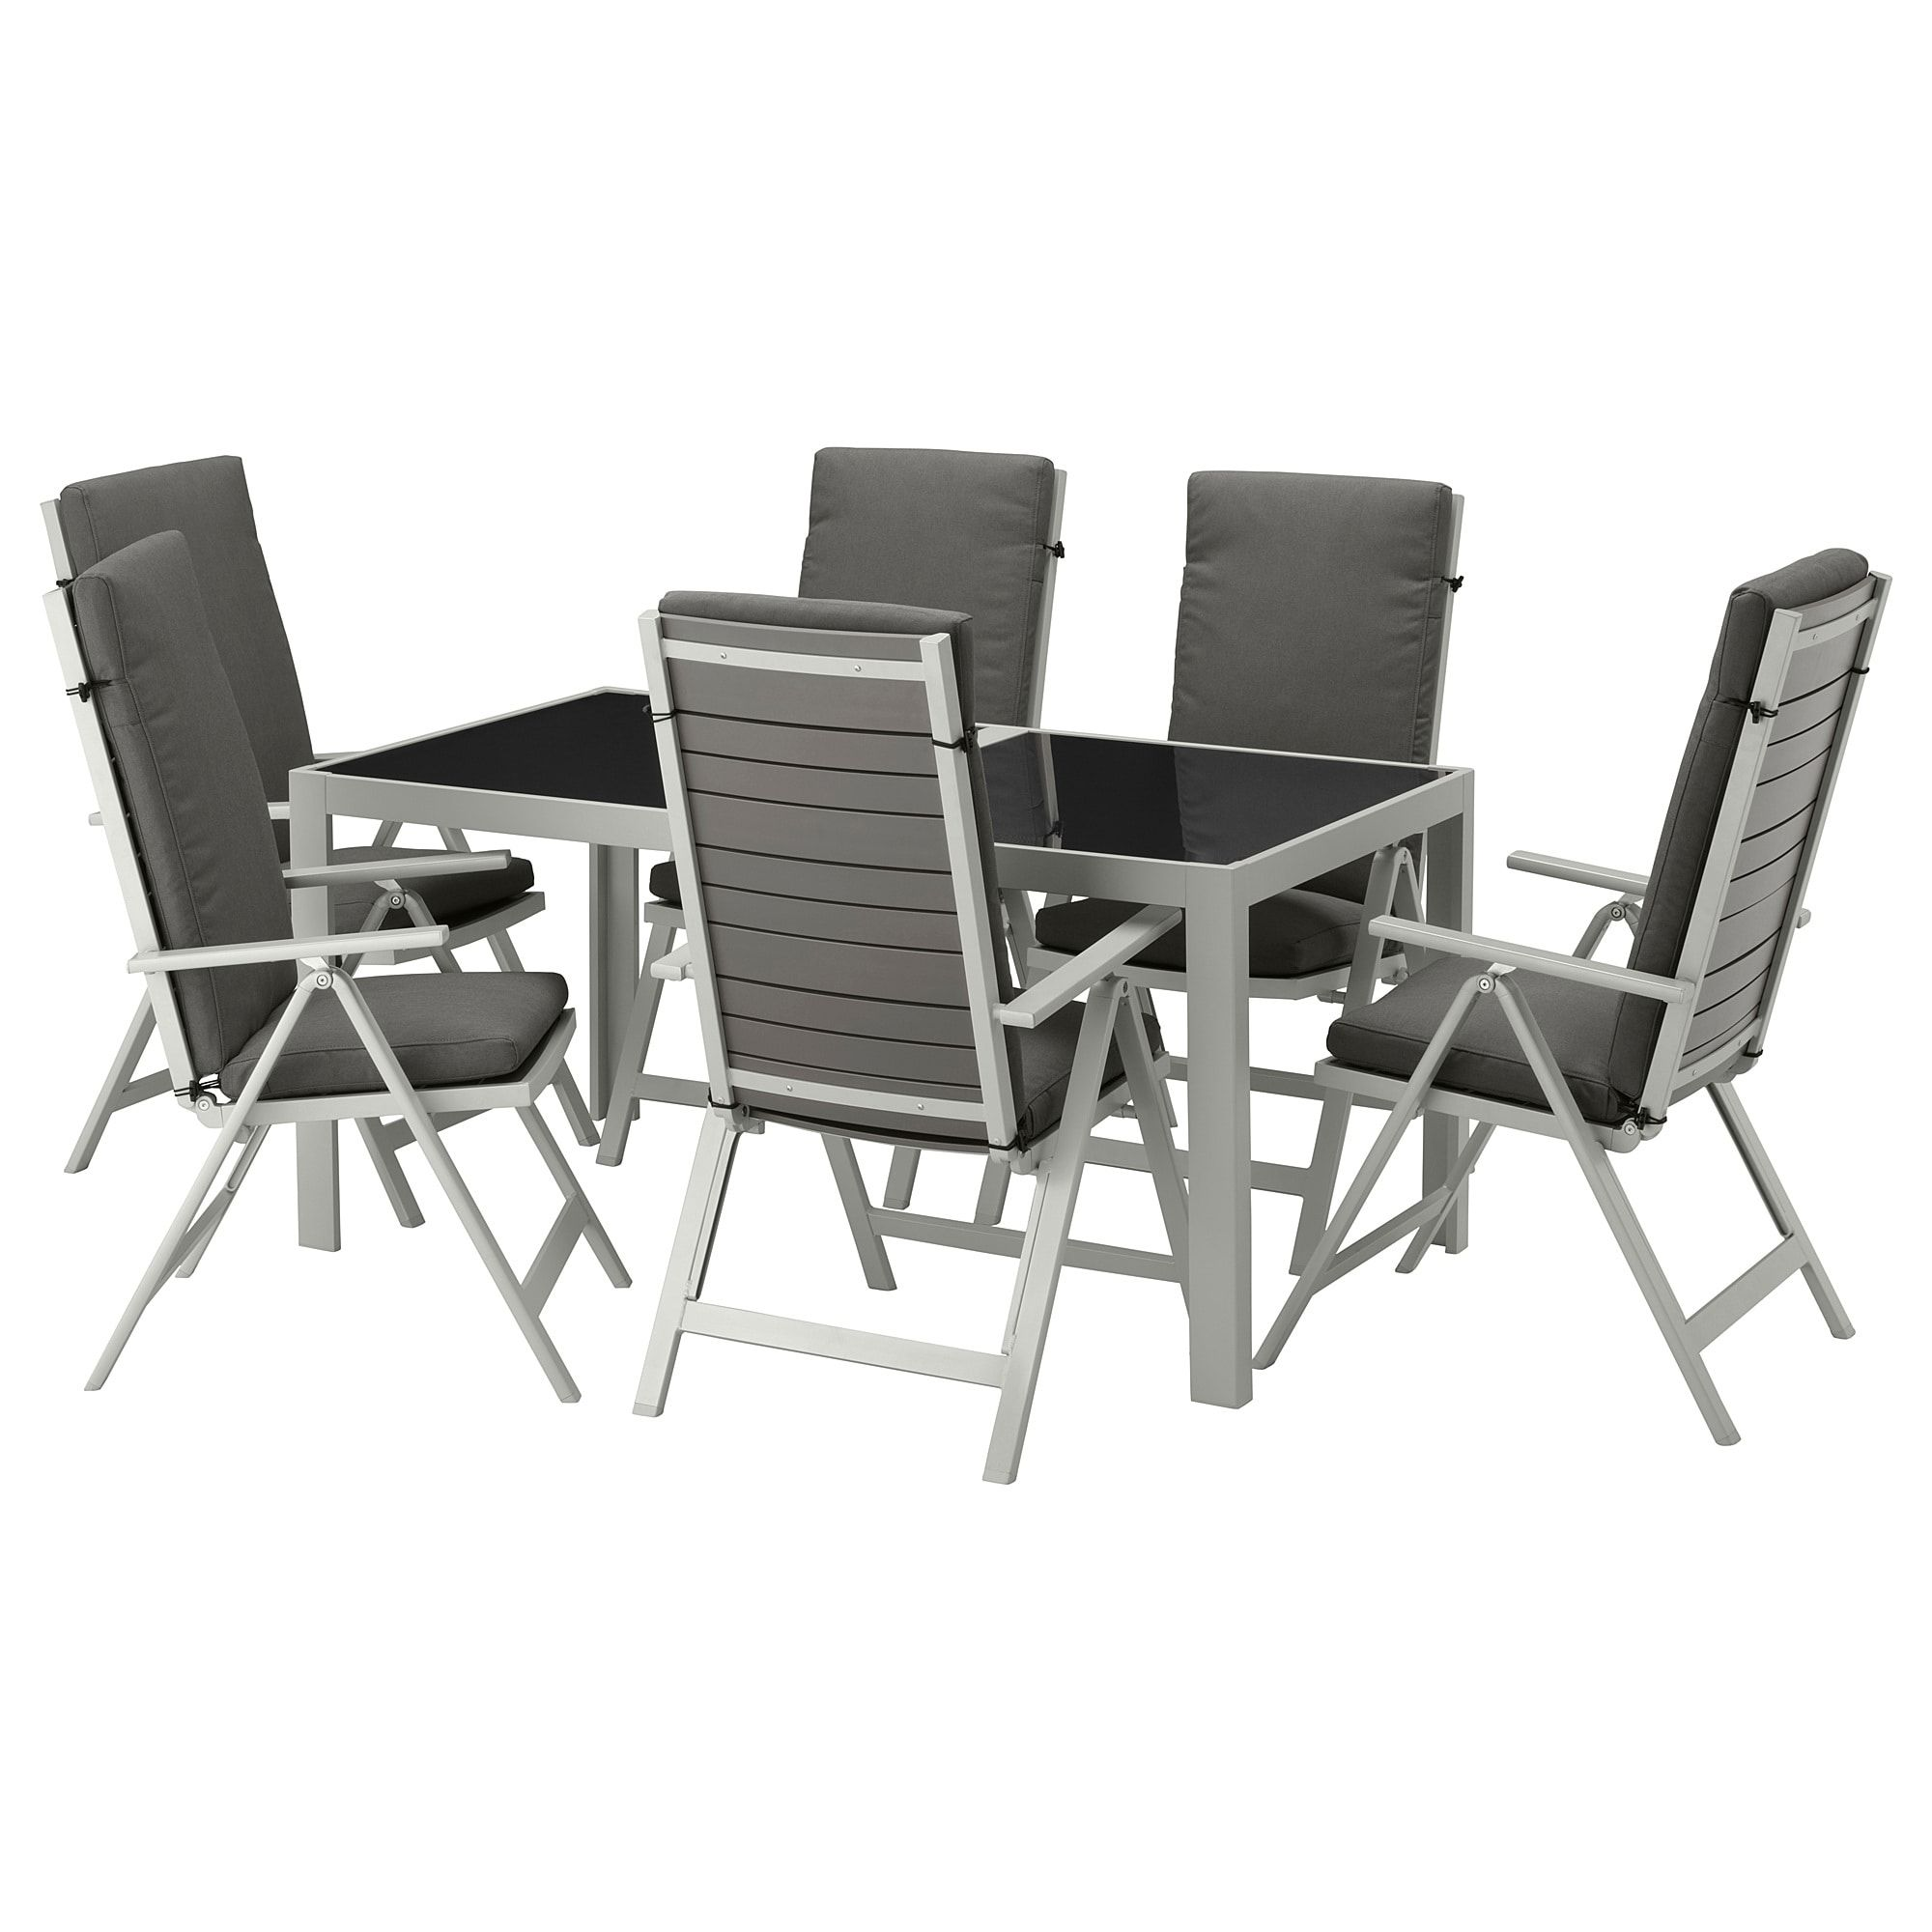 US Furniture and Home Furnishings   Outdoor furniture sets